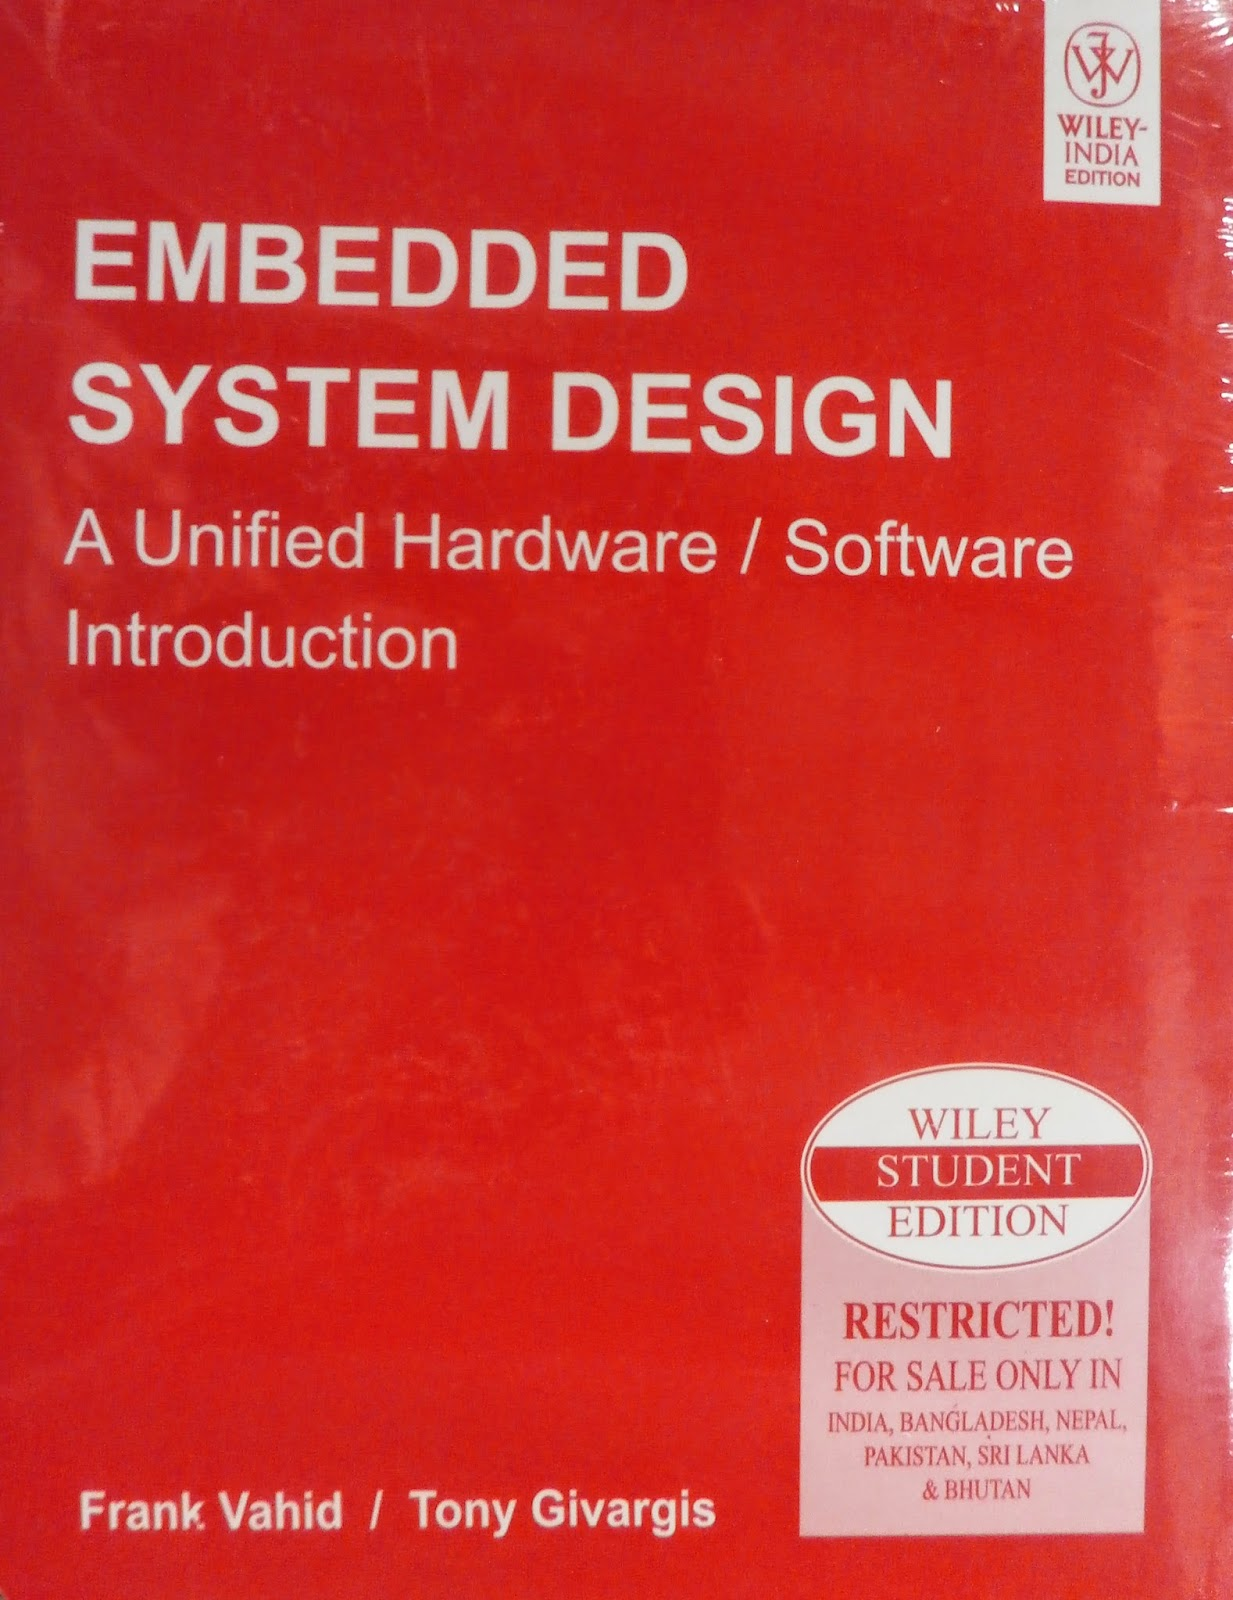 Embedded System Design Frank Vahid Book Pdf Free Download Online Hindi Book Reading Free